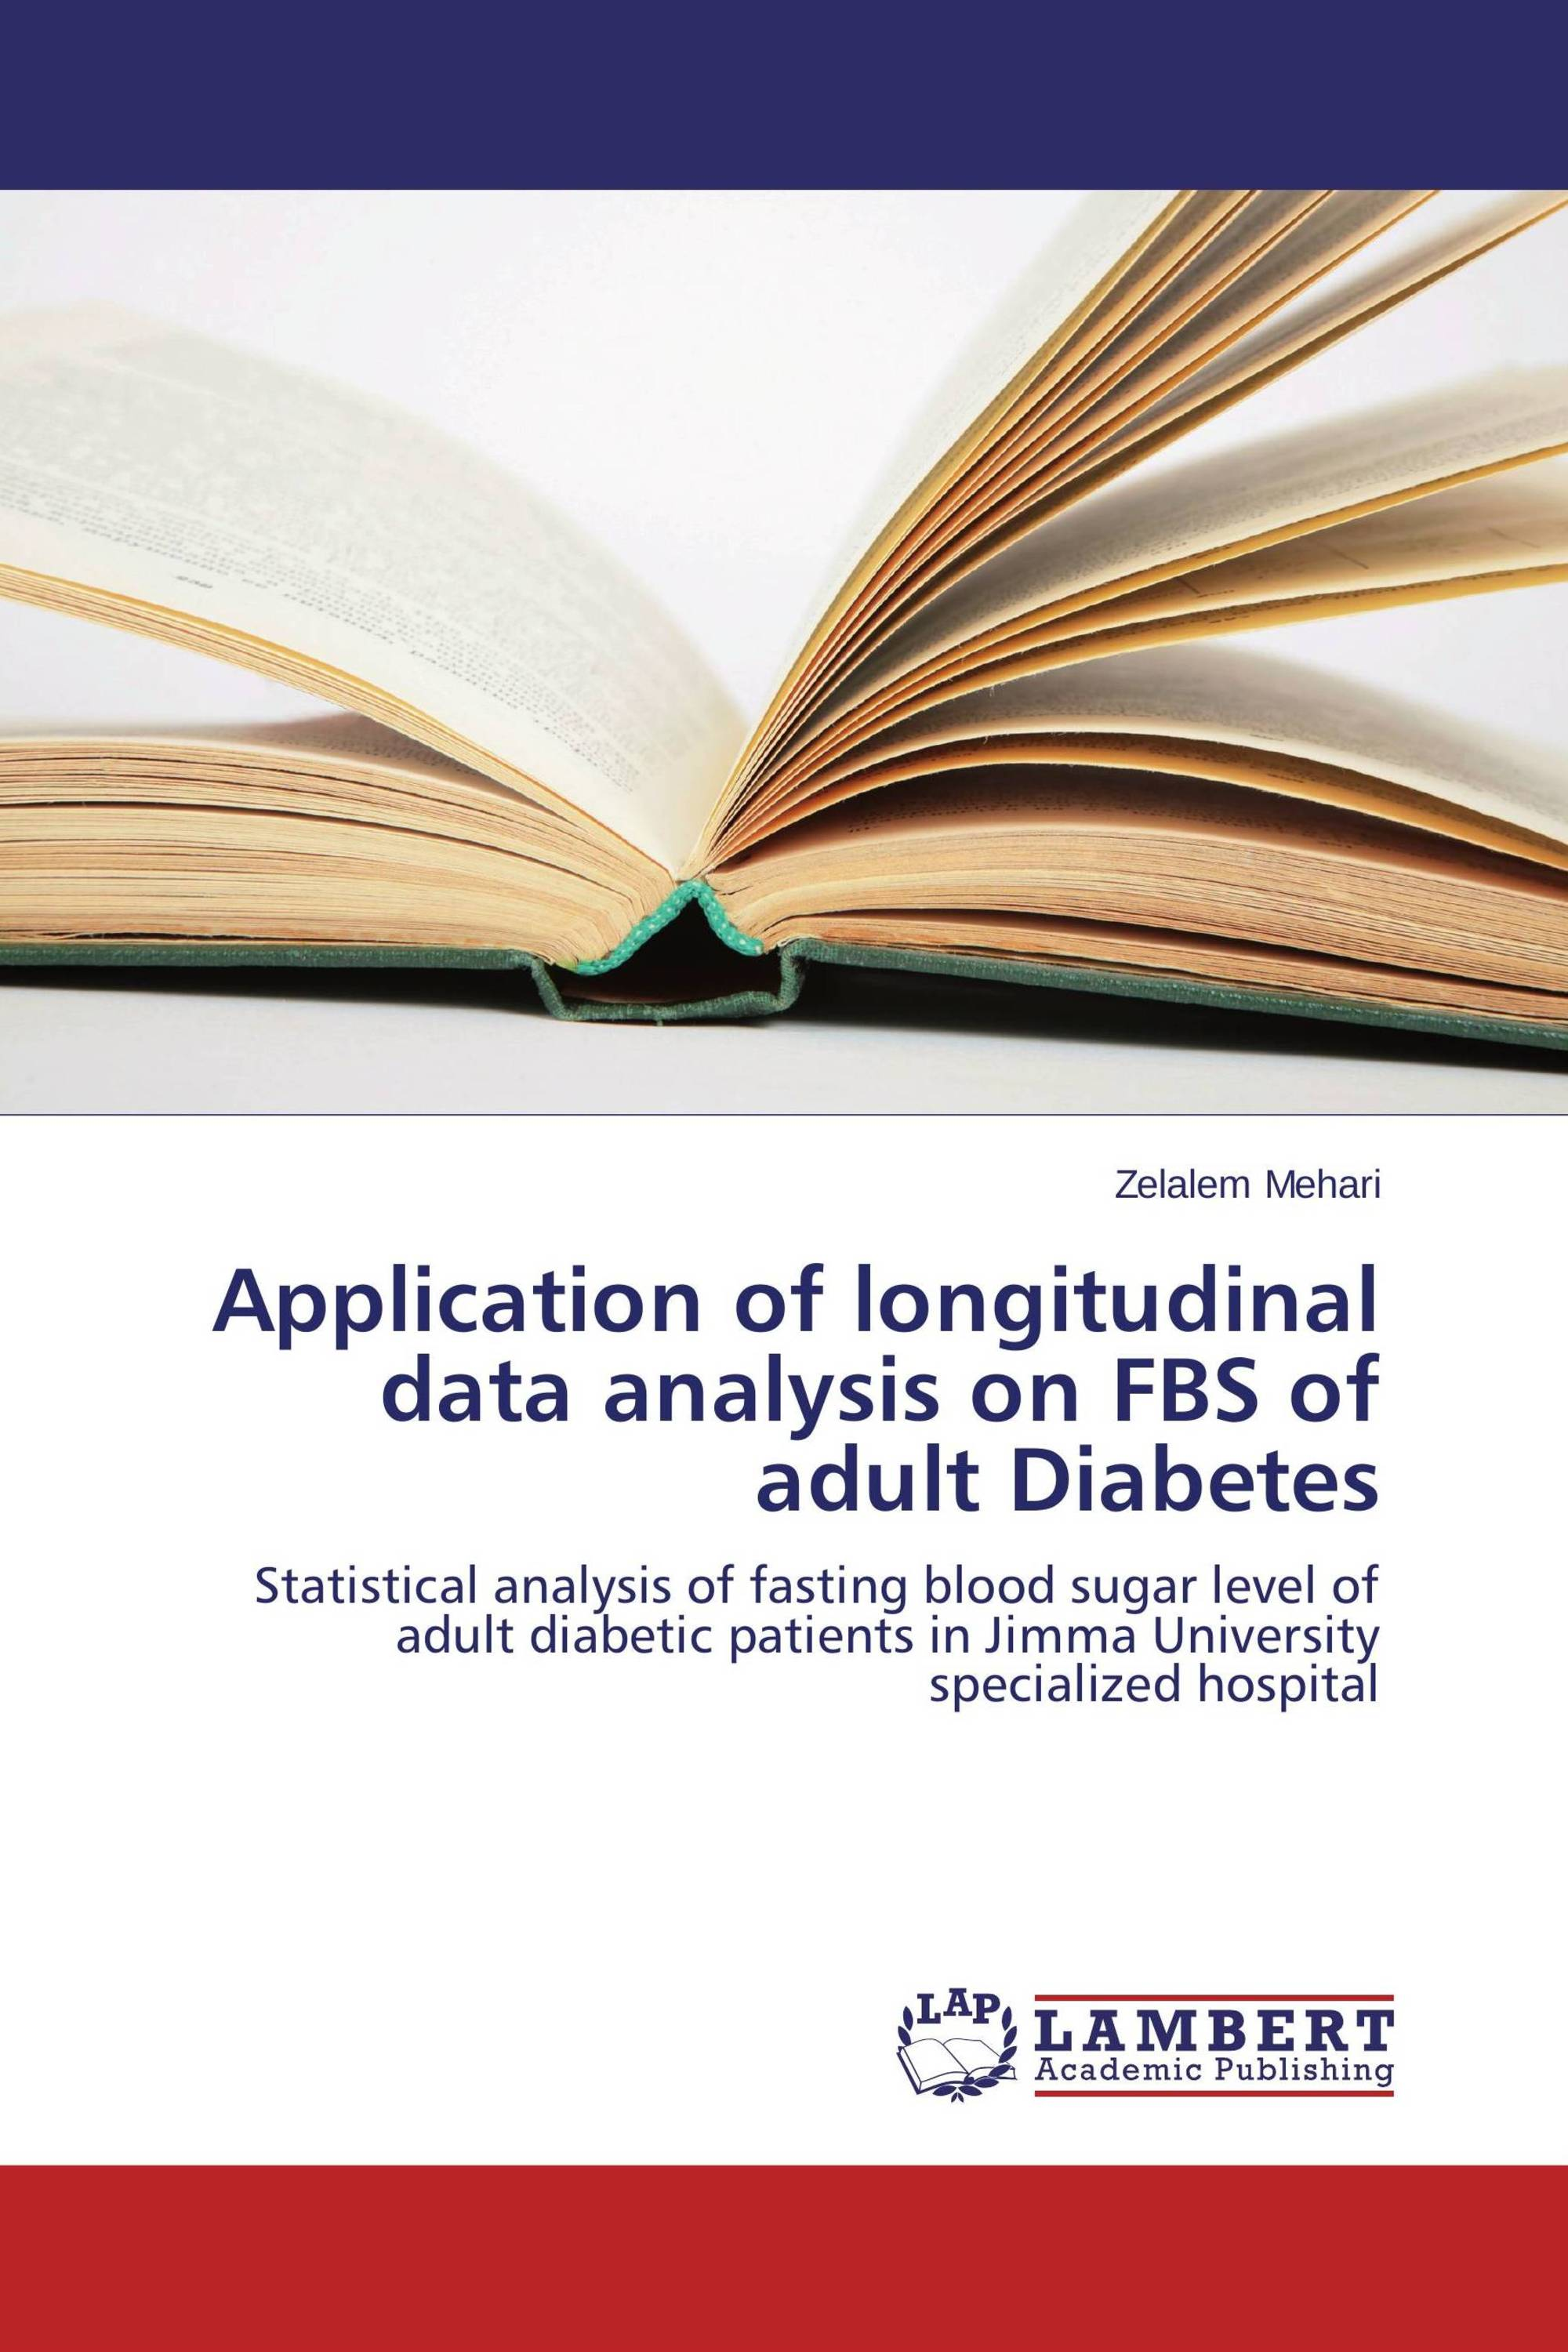 Application of longitudinal data analysis on FBS of adult Diabetes